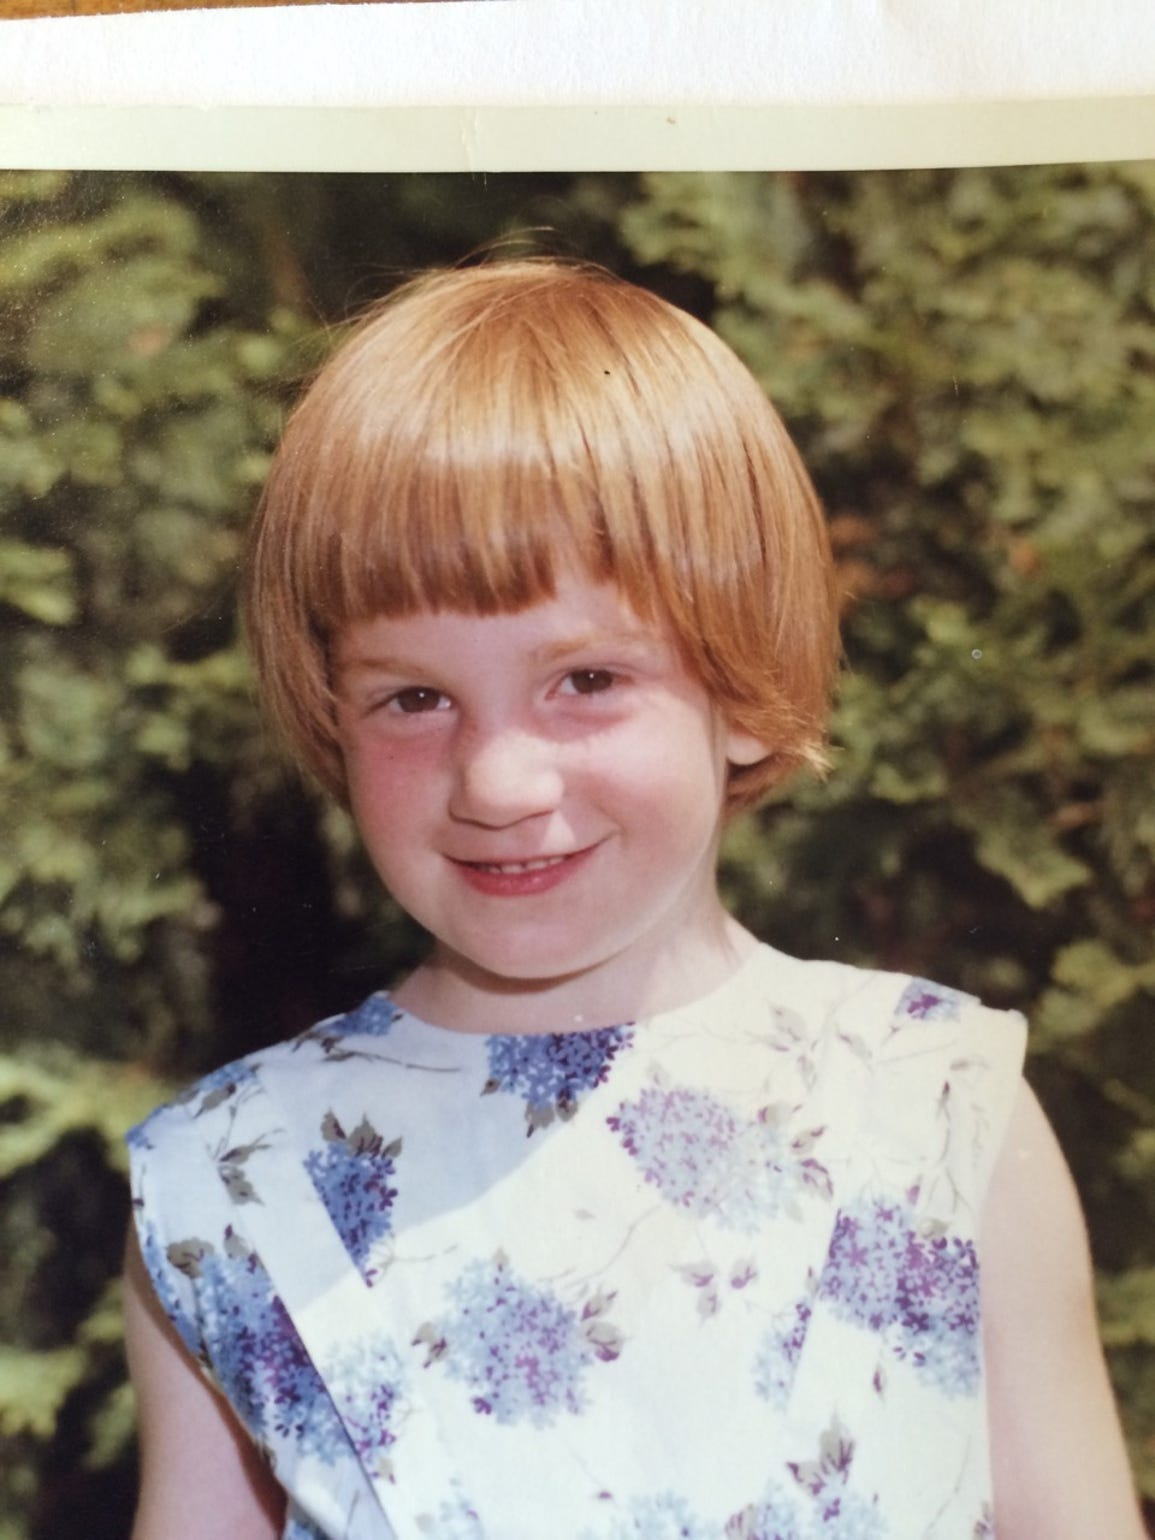 Clai Lasher-Sommers, pictured in an undated photograph as a child, grew up near the Vermont border of New Hampshire. Police and court records indicate that community leaders knew she and her brother were being abused at home. In 1970, when Lasher-Sommers was 13, her stepfather shot her in the back. She's one of eight survivors featured in the new podcast Aftermath.